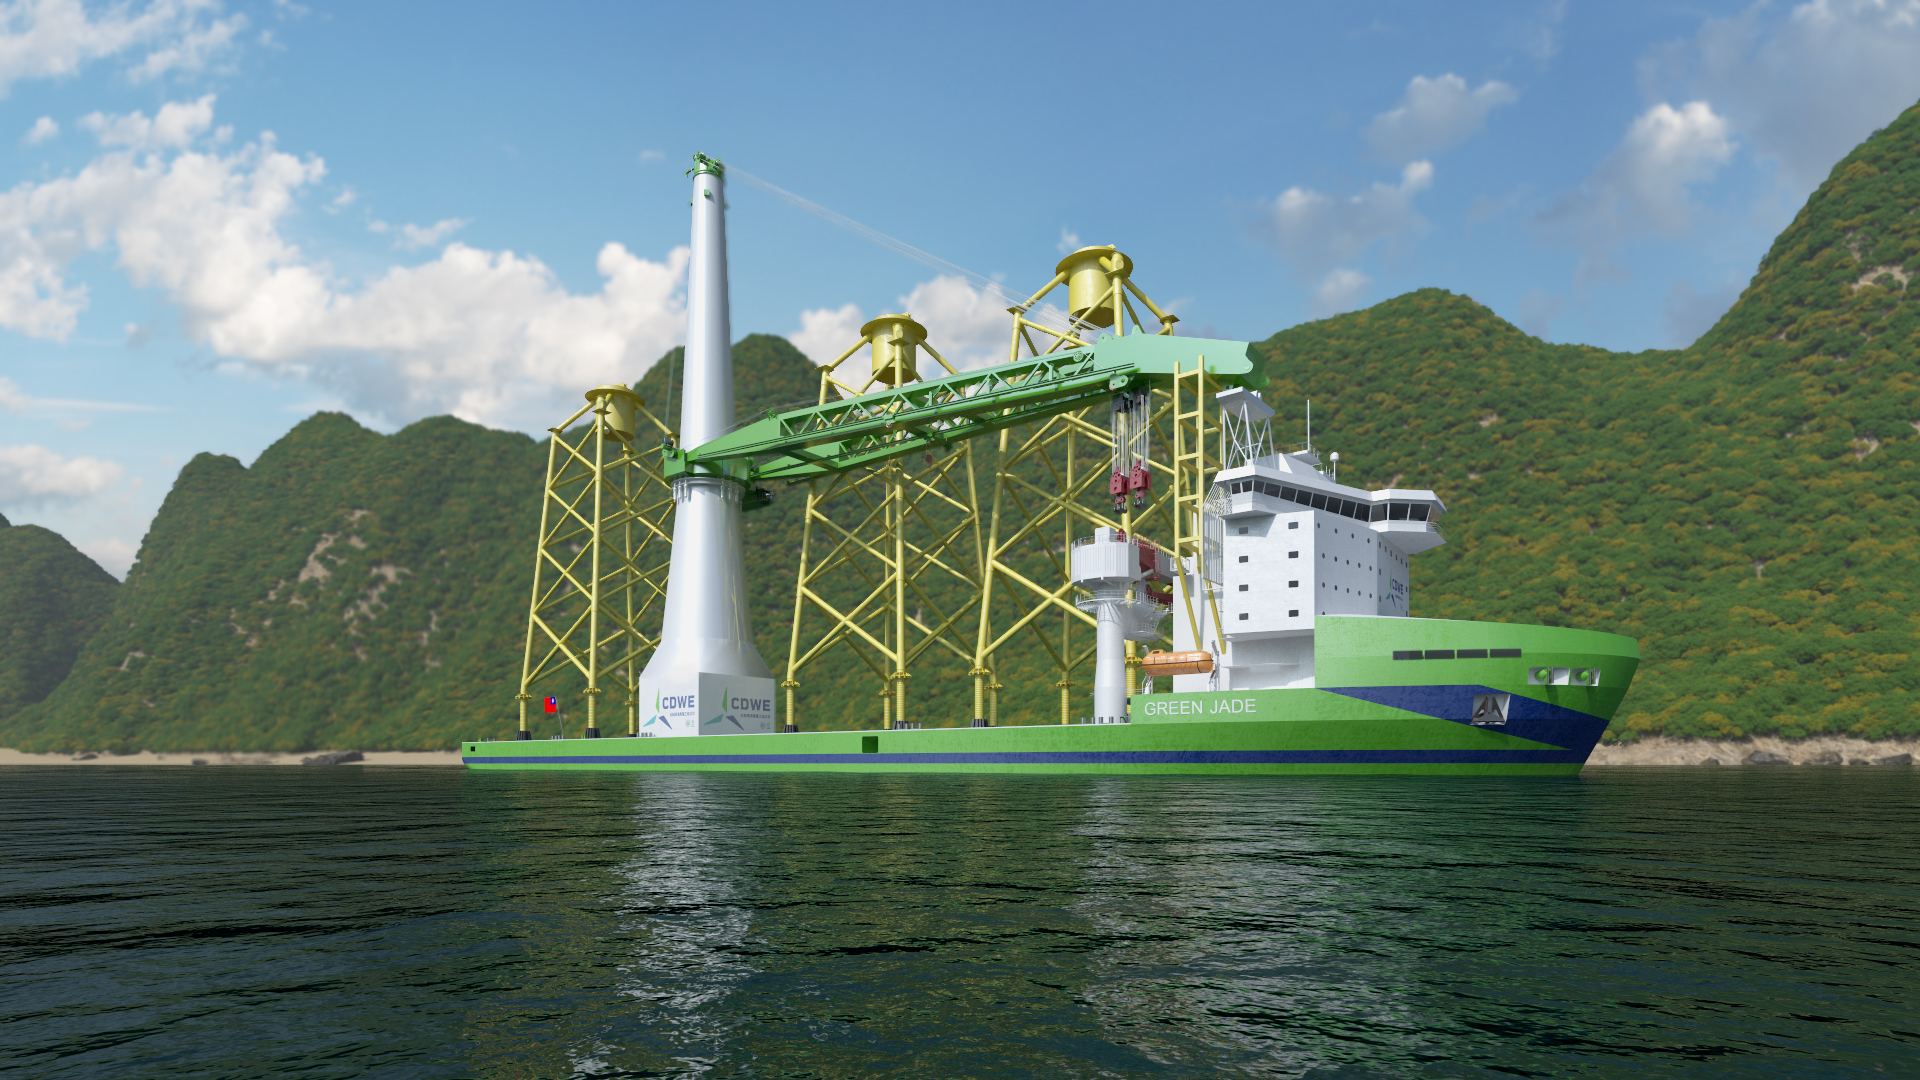 CDWE reaches Final Investment Decision and orders pioneering offshore wind installation vessel 'Green Jade'